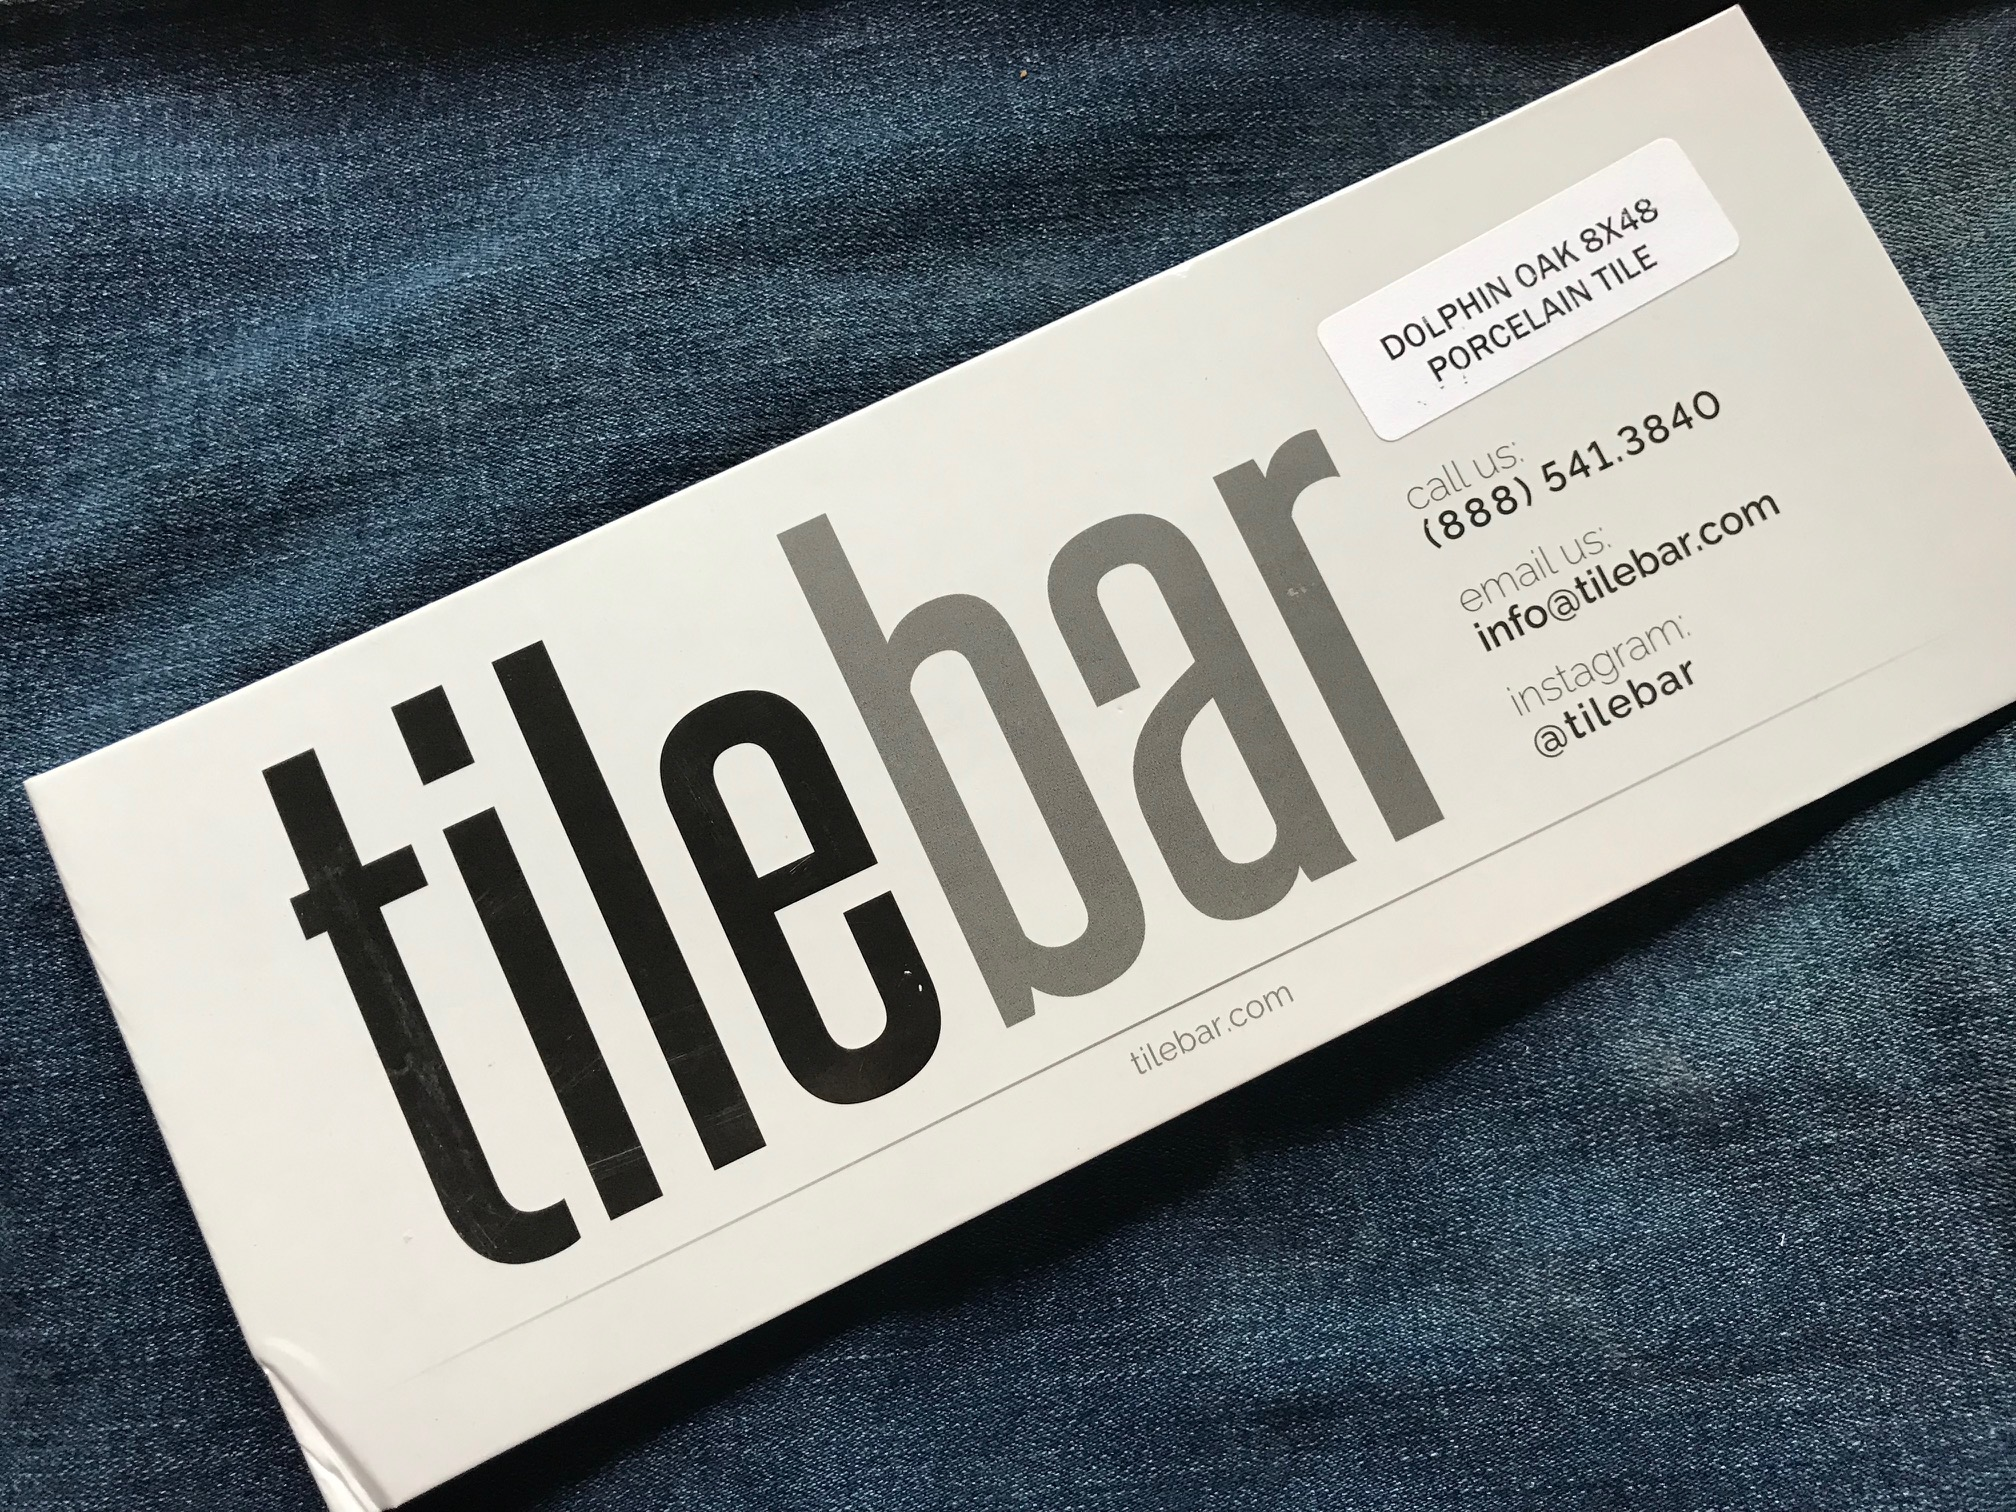 Dolphin Oak Porcelain Tile from tilebar: 238 ppm Lead (90 is unsafe in kids' items)